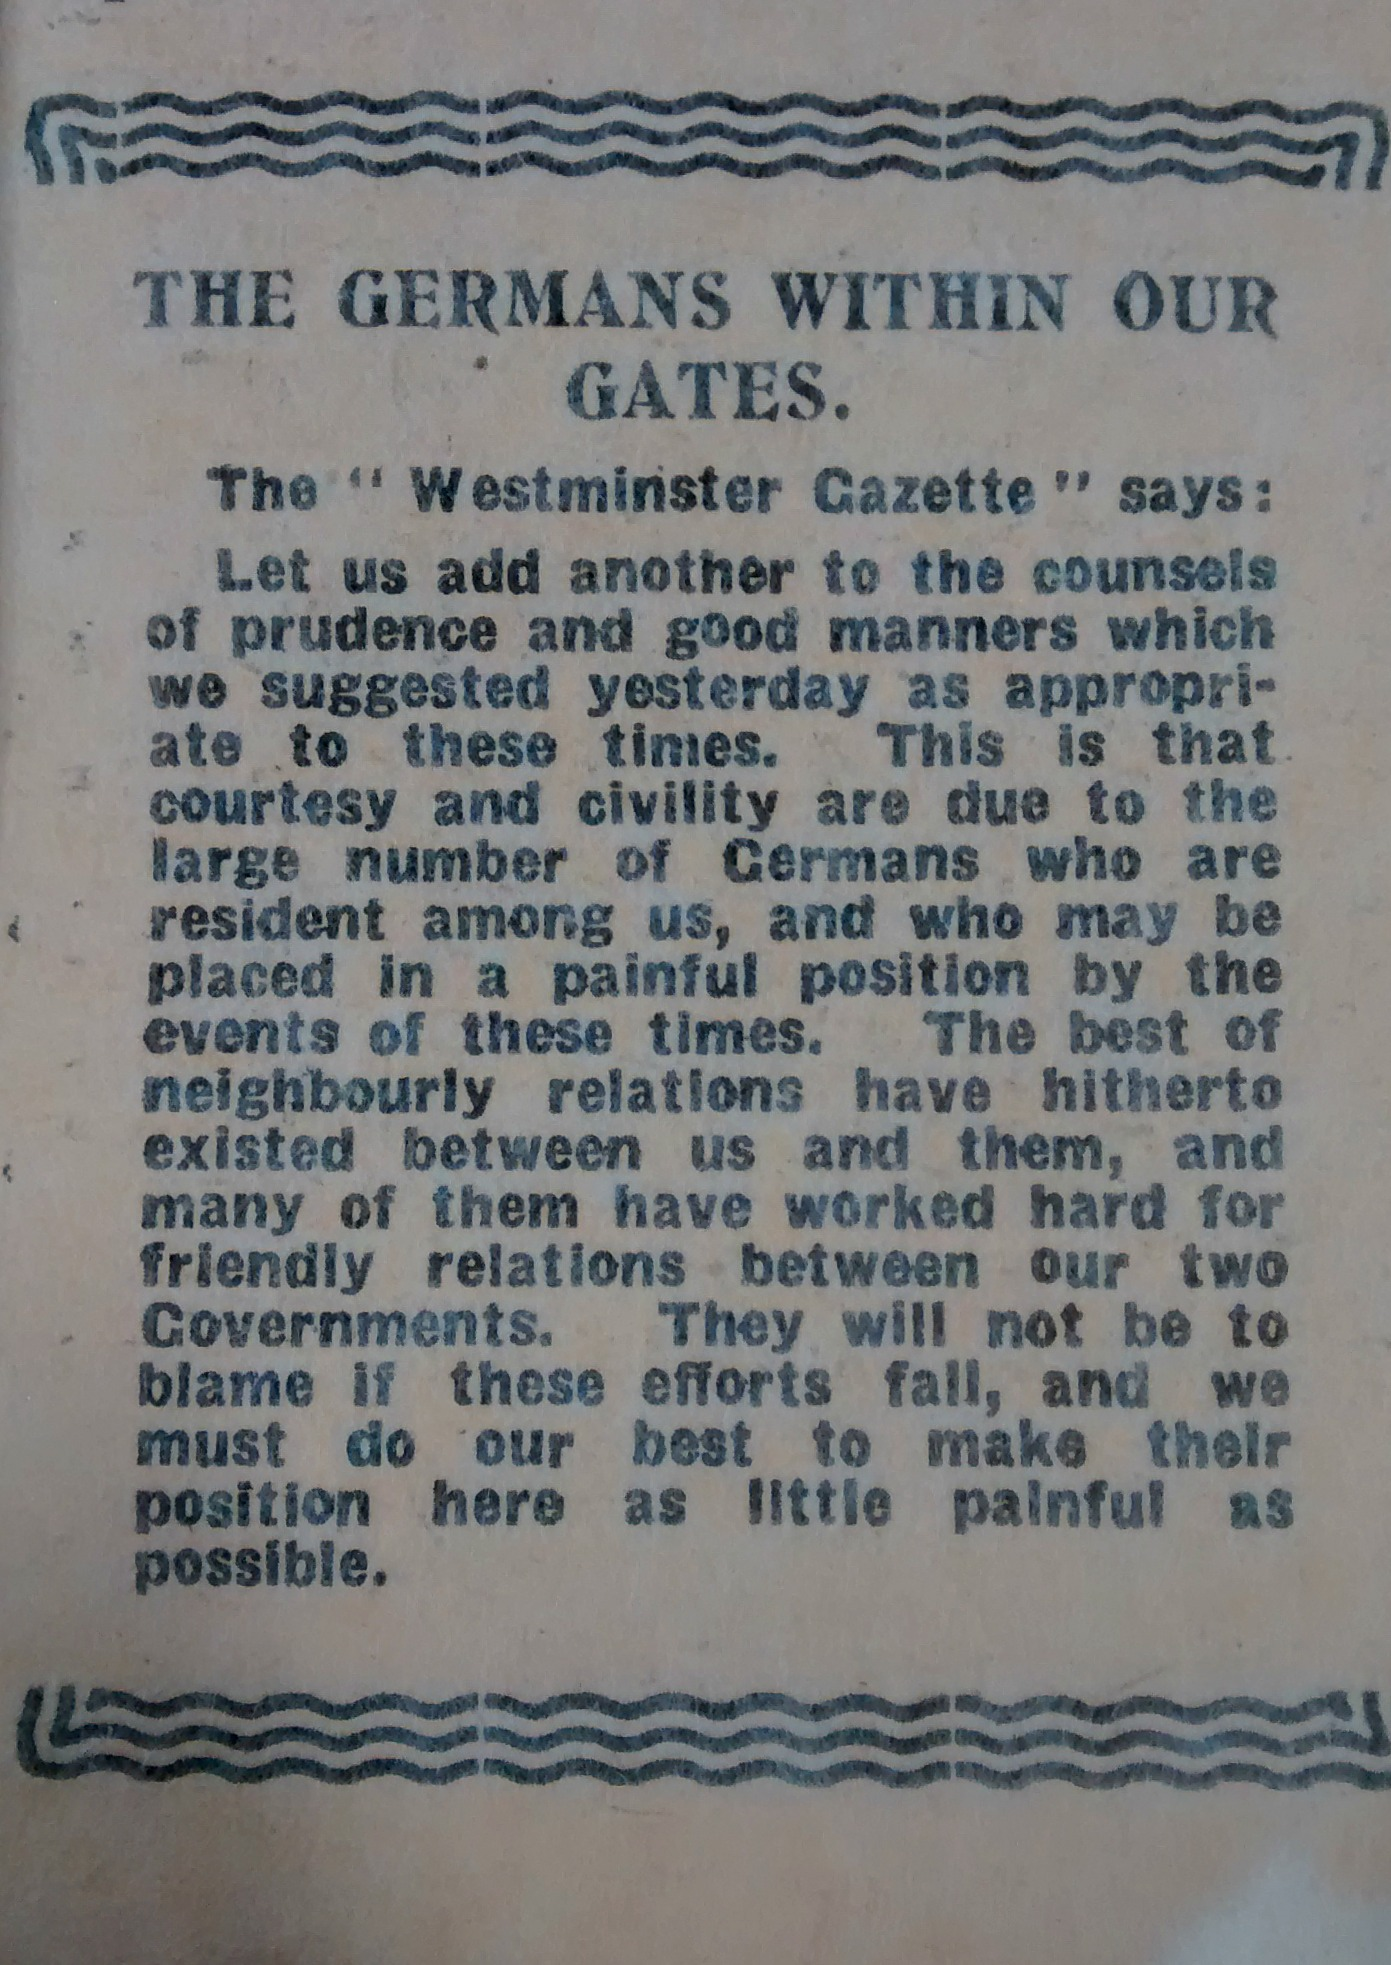 'The Germans within our gates' taken from the Illustrated Chronicle, on 6 August 1914 reproduced by the kind permission of Newcastle City Library